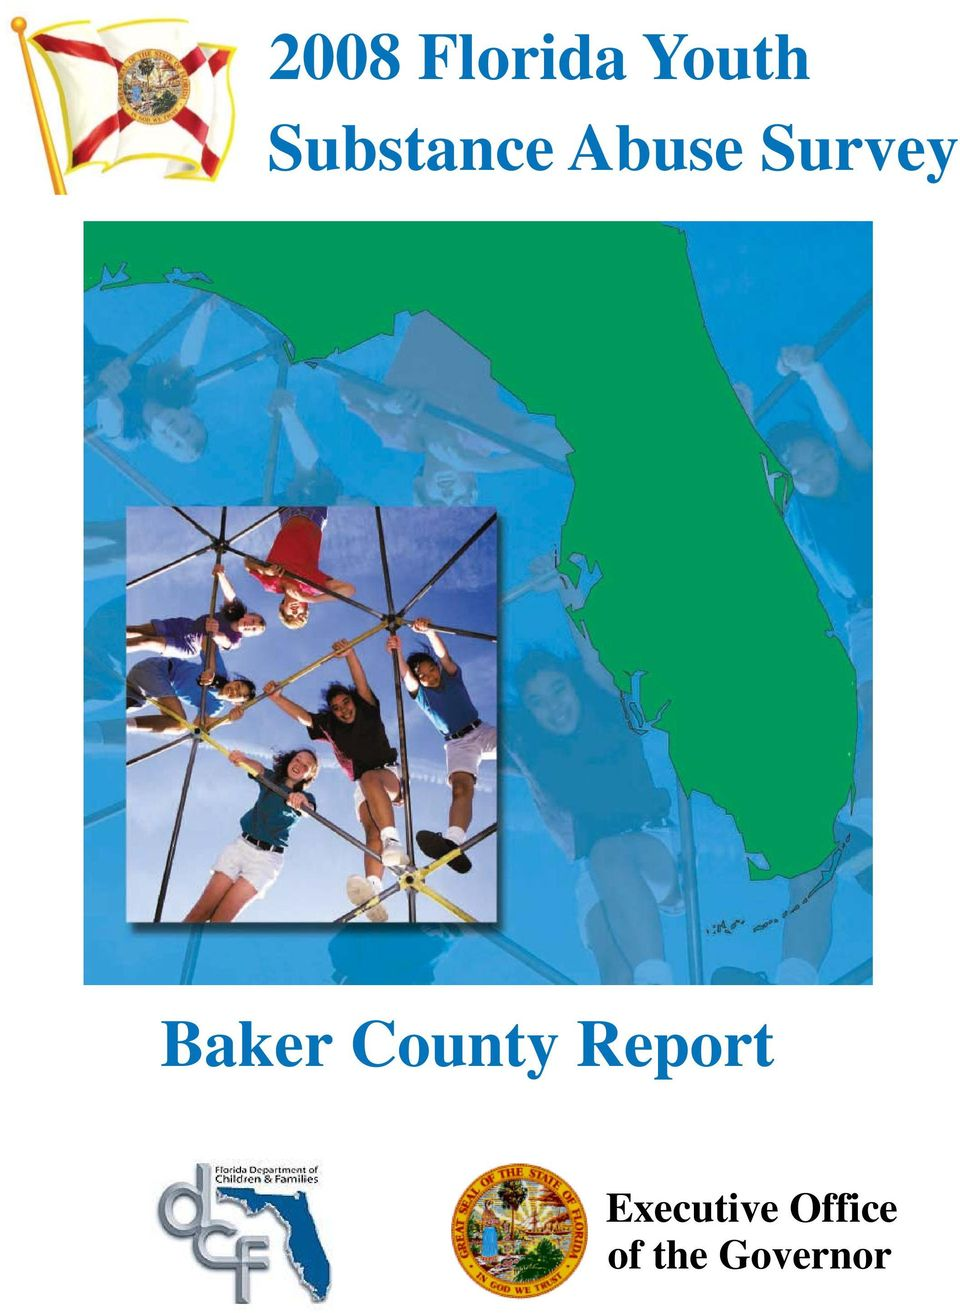 Baker County Report